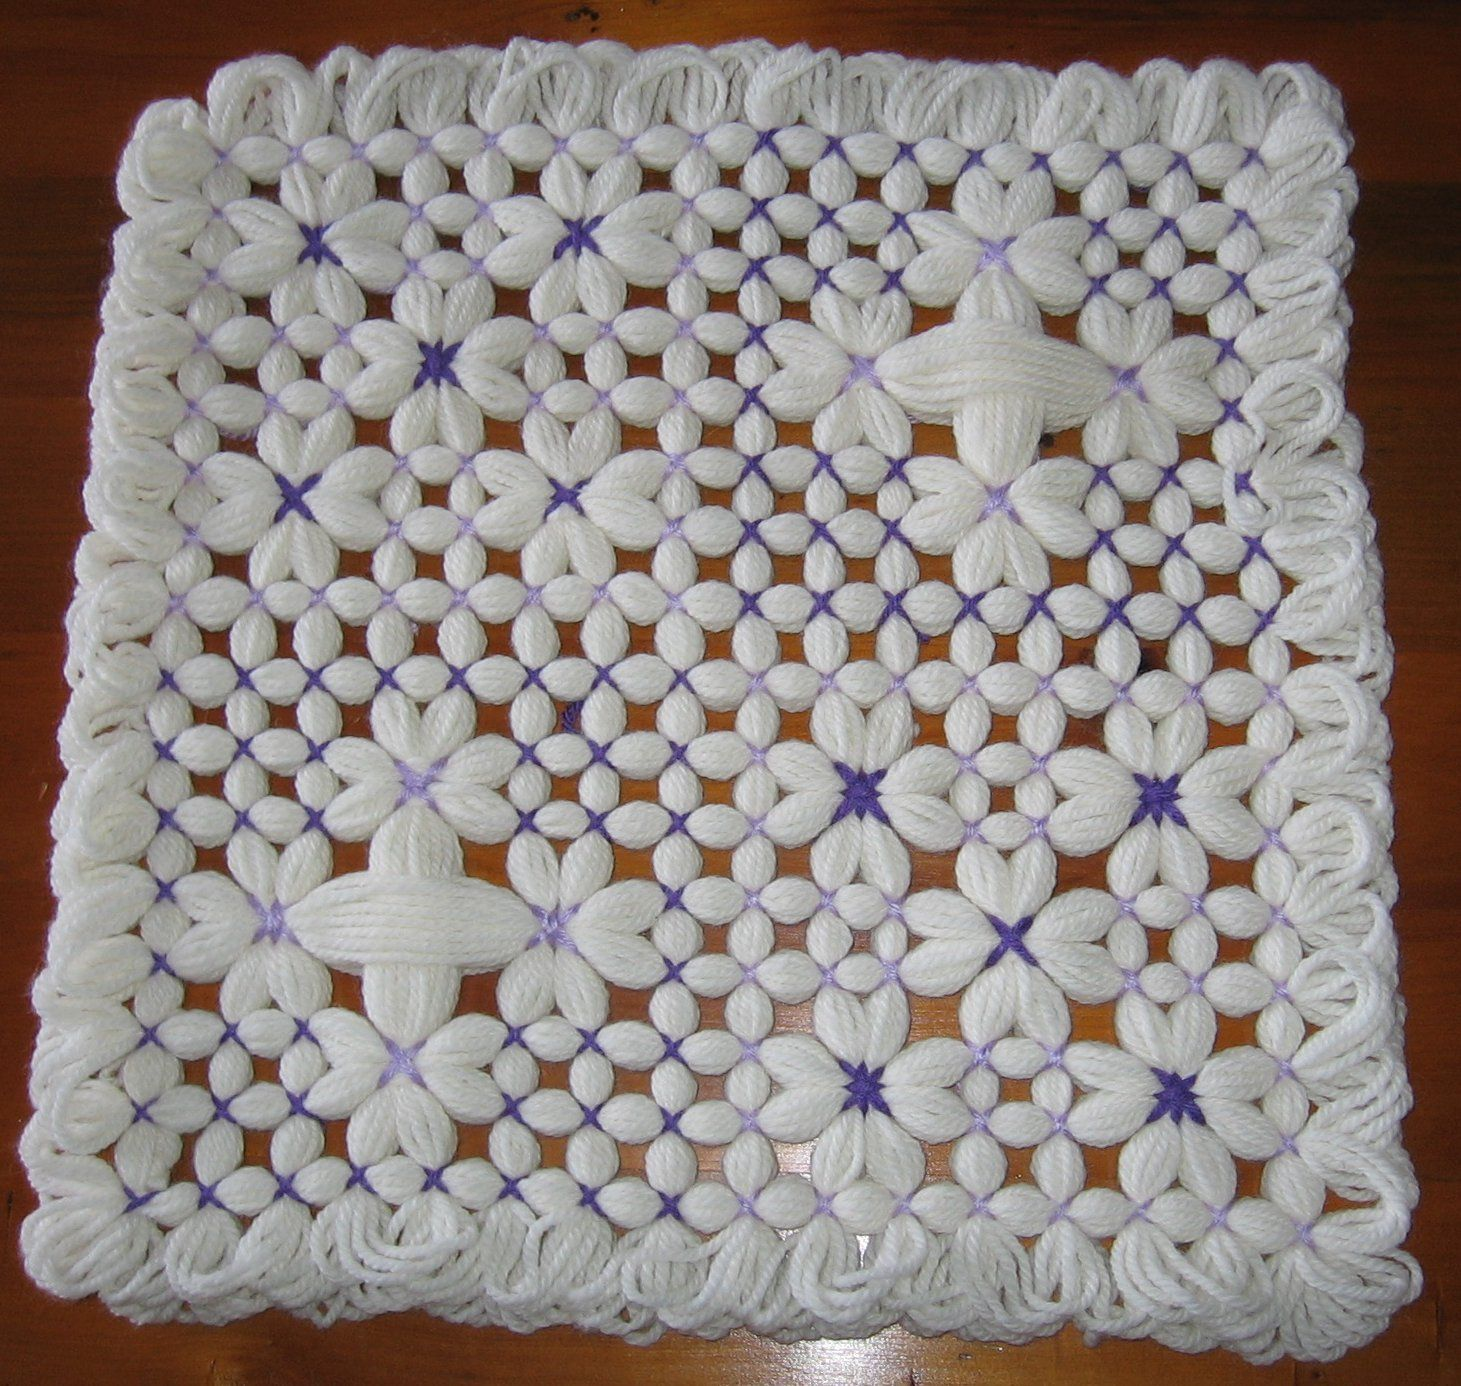 Baby Blanket Made with a Butterfly Loom | Butterfly loom | Pinterest ...